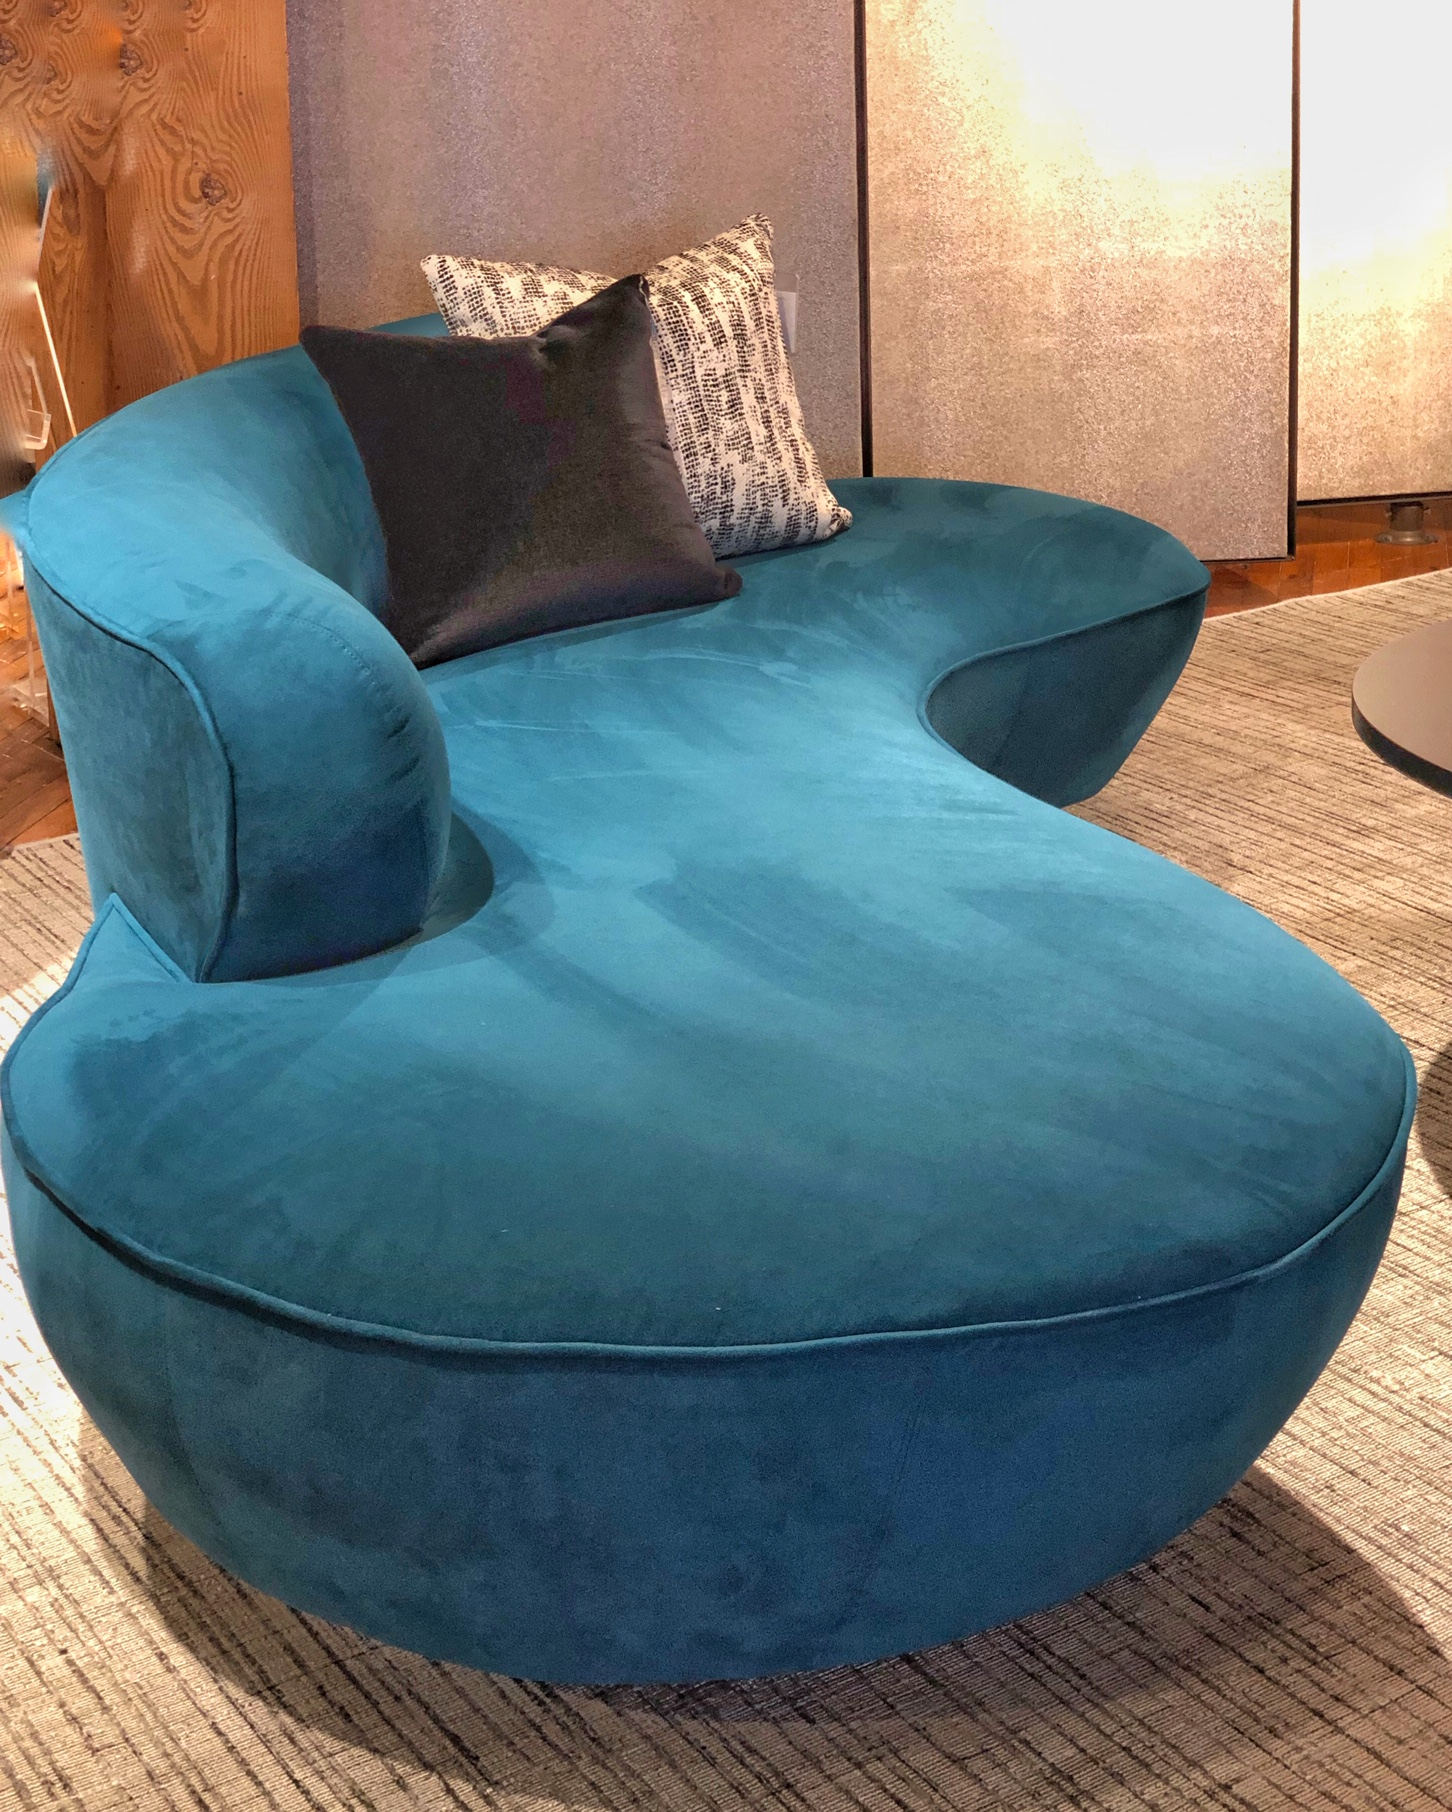 Kravet teal curved sofa